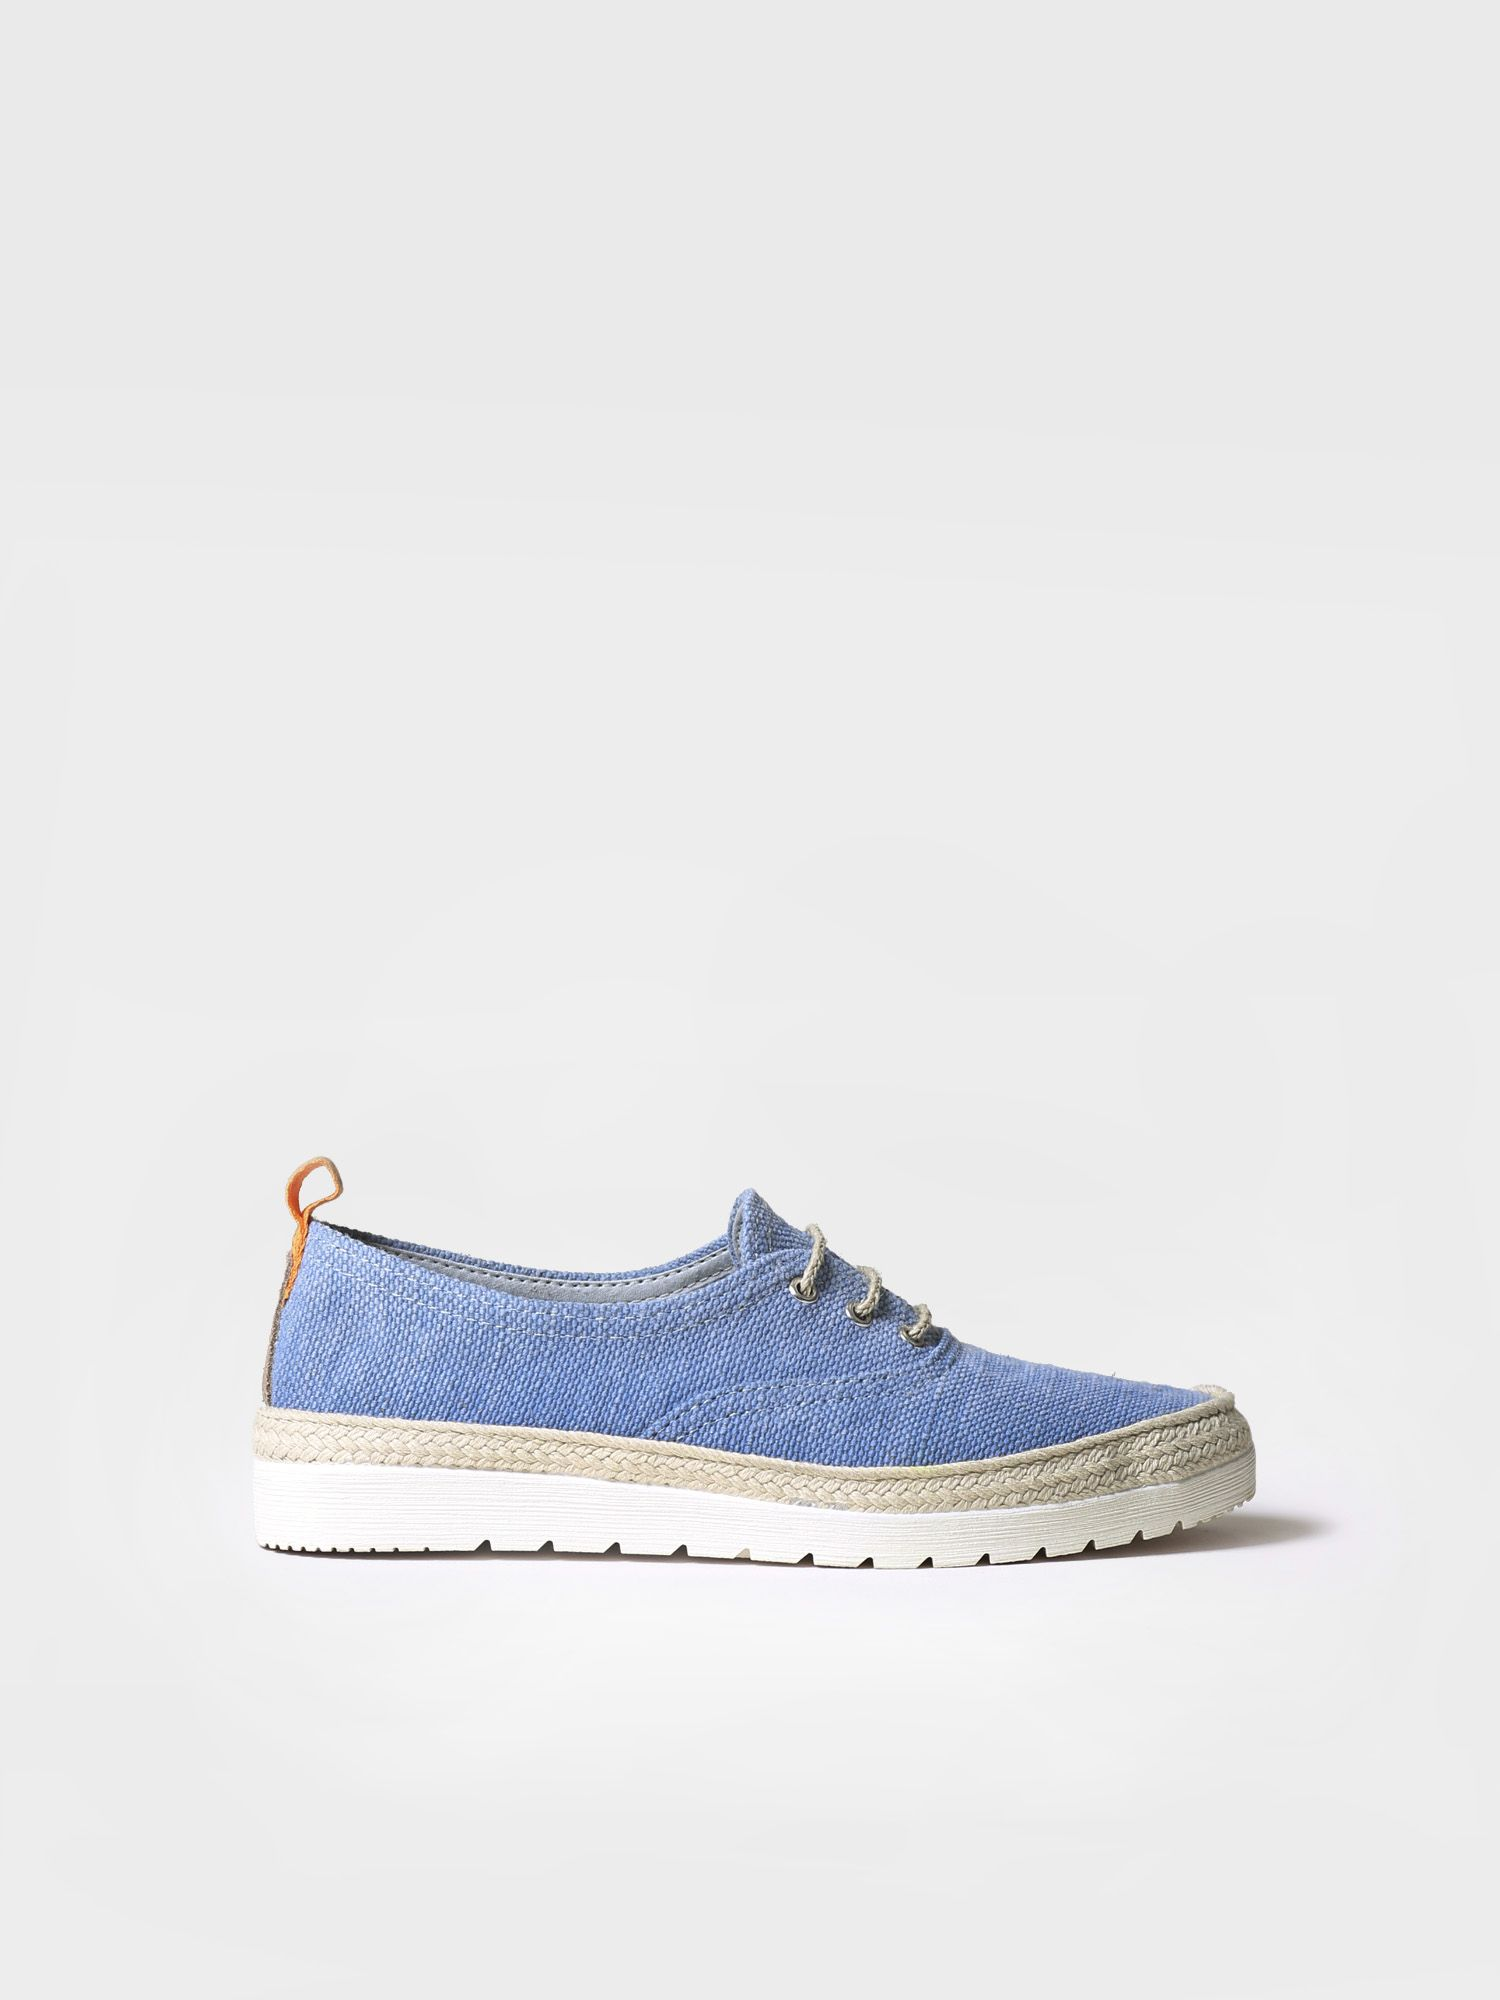 lace up sports shoes - BEGO-SU